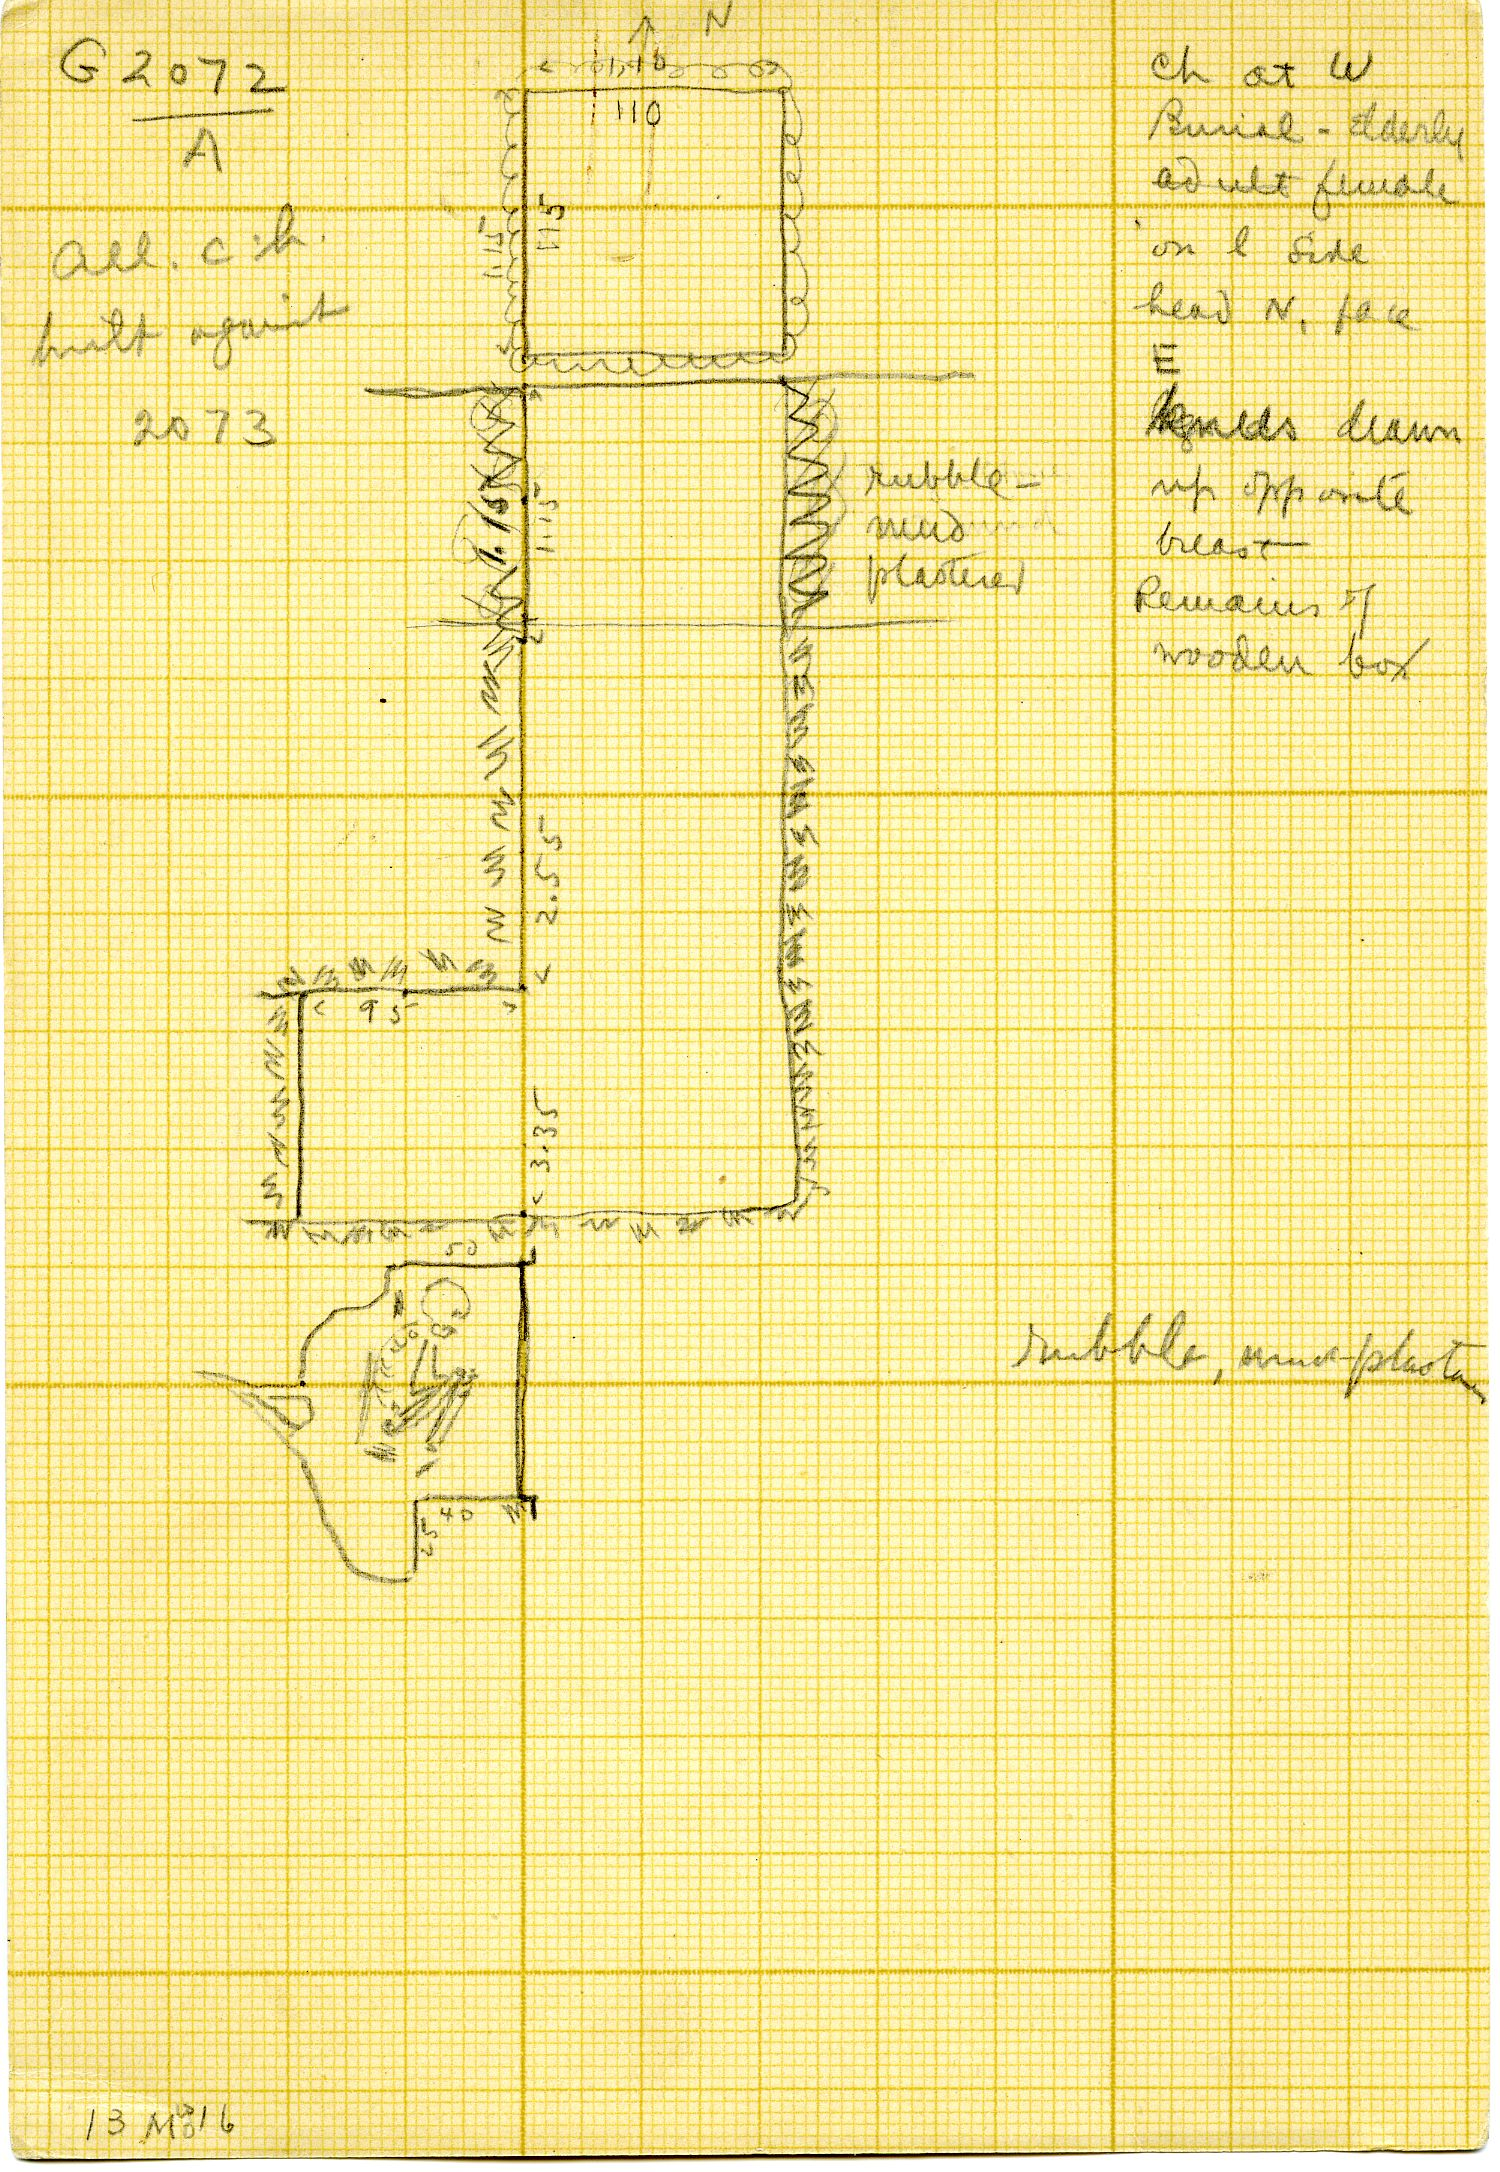 Maps and plans: G 3072, Shaft A